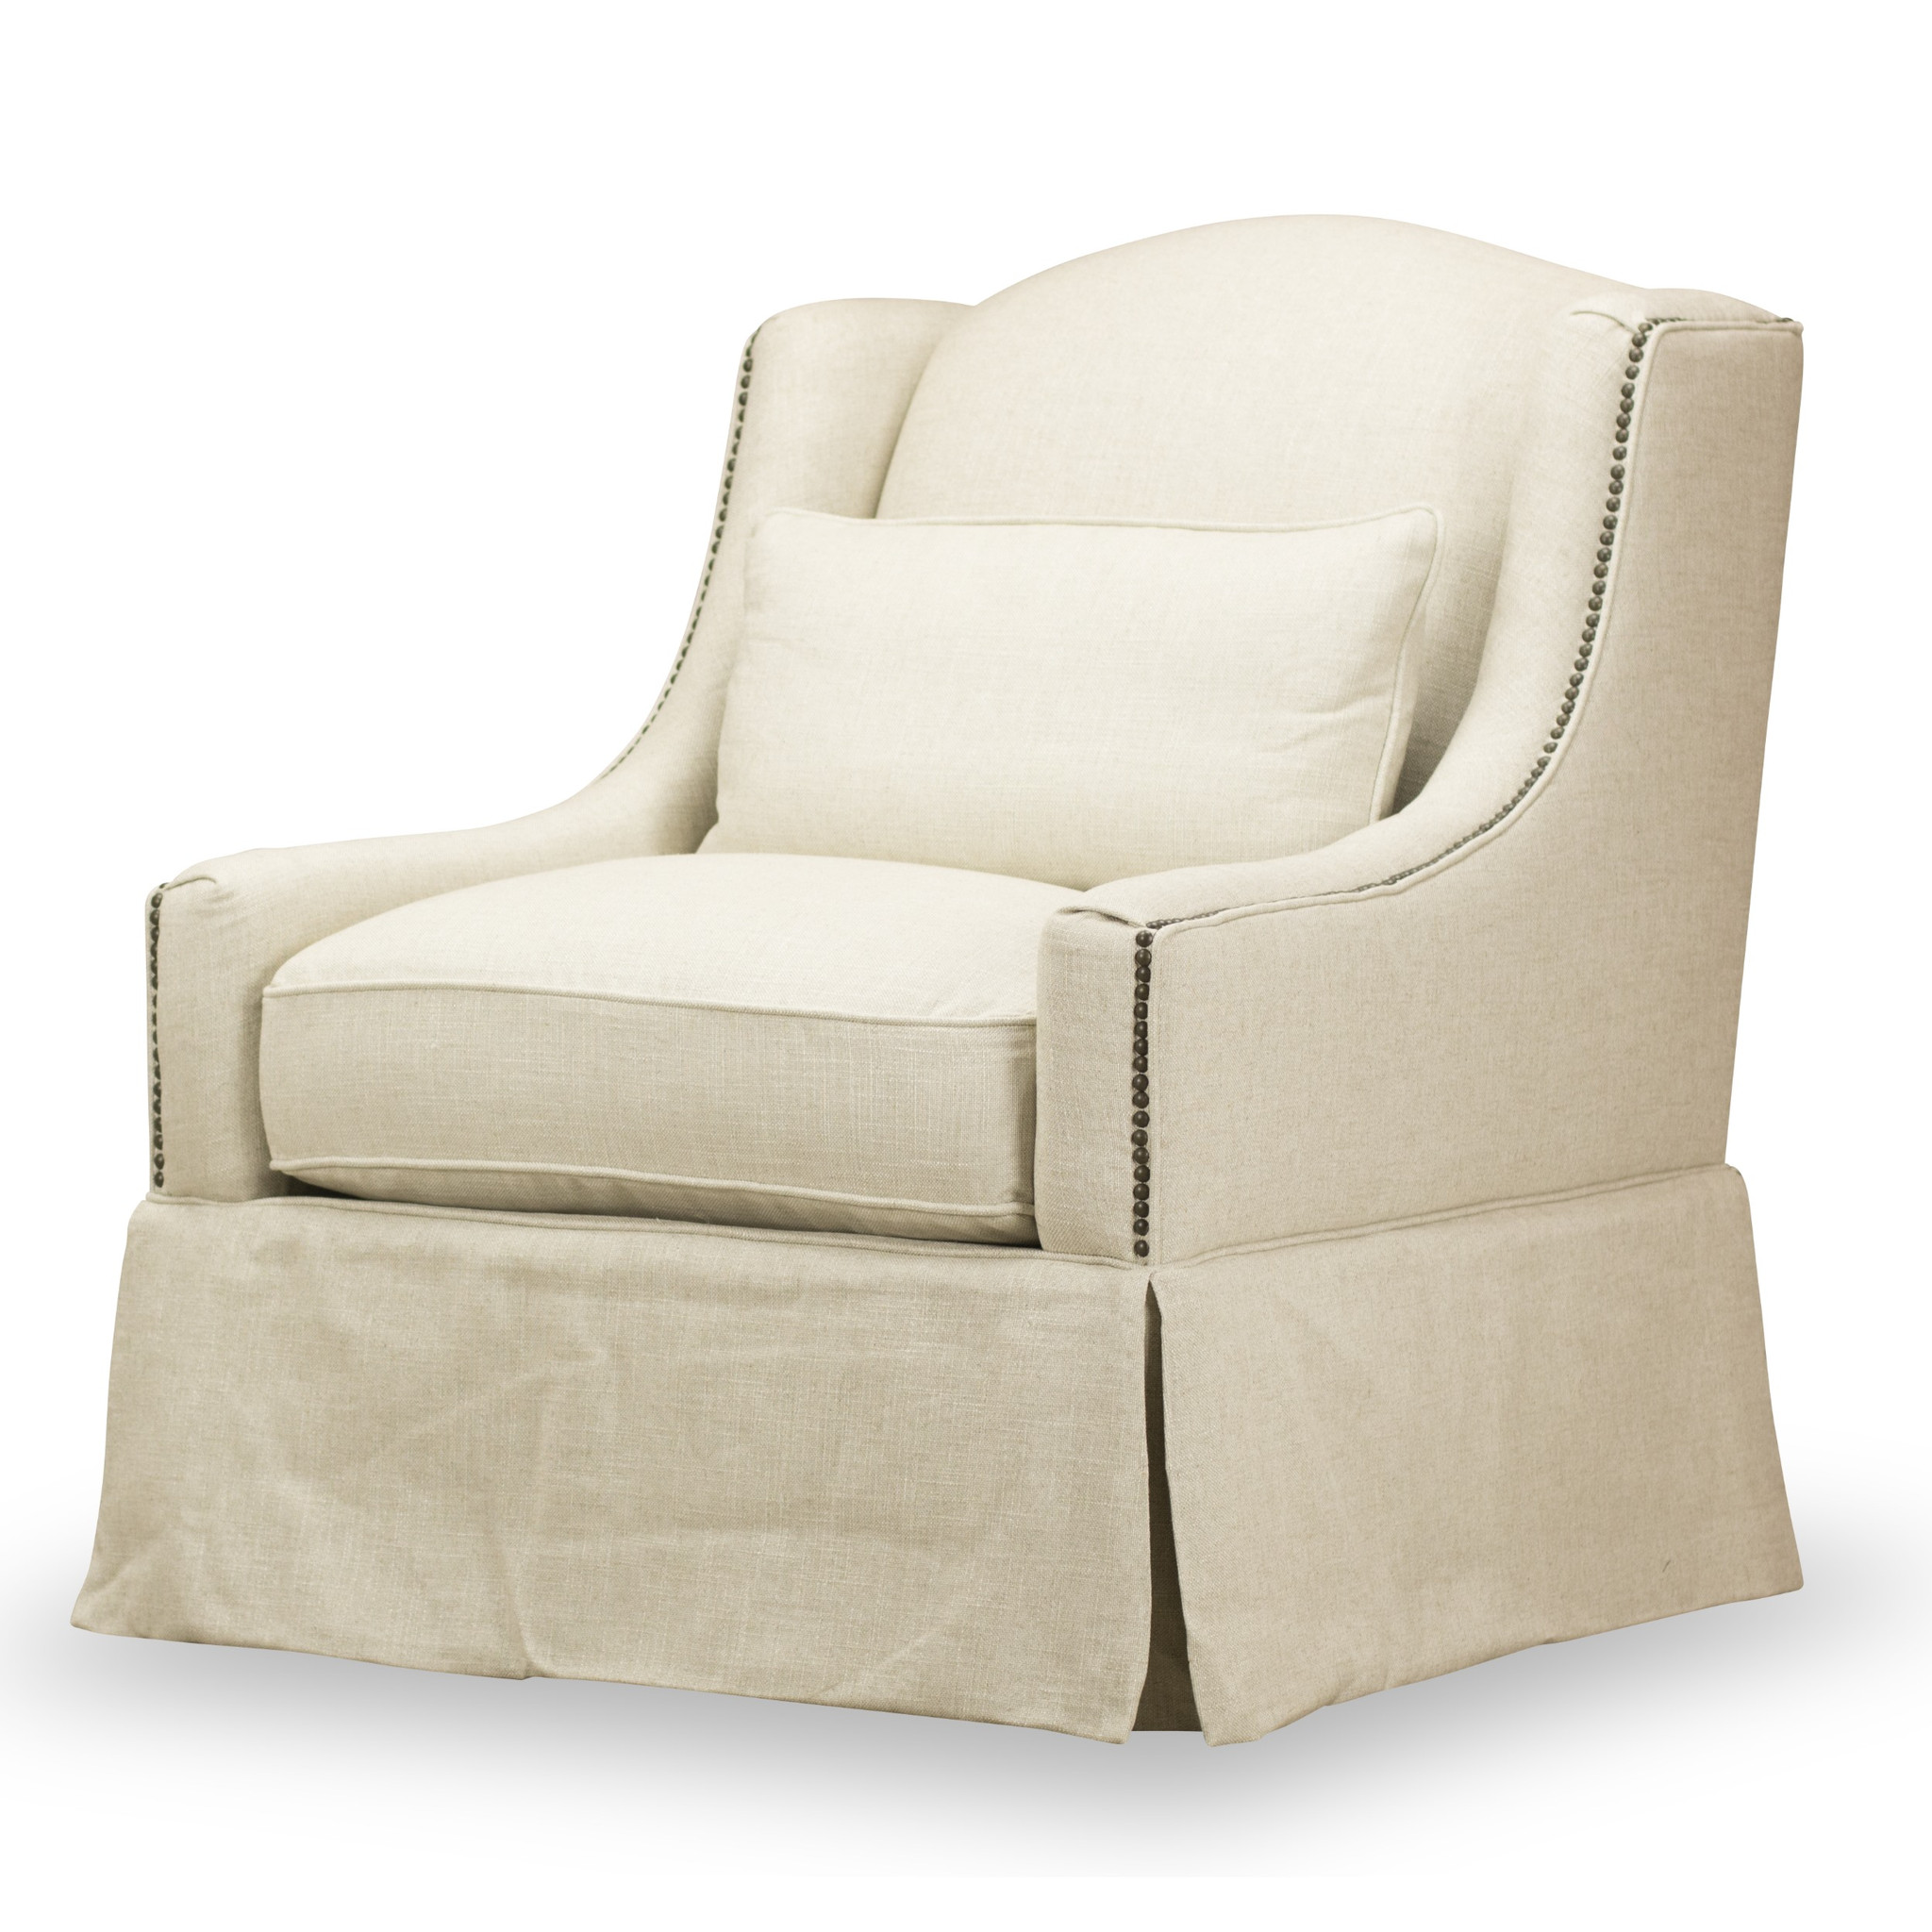 halston-chair-W-S3133-10-3385-99-natural-f3q